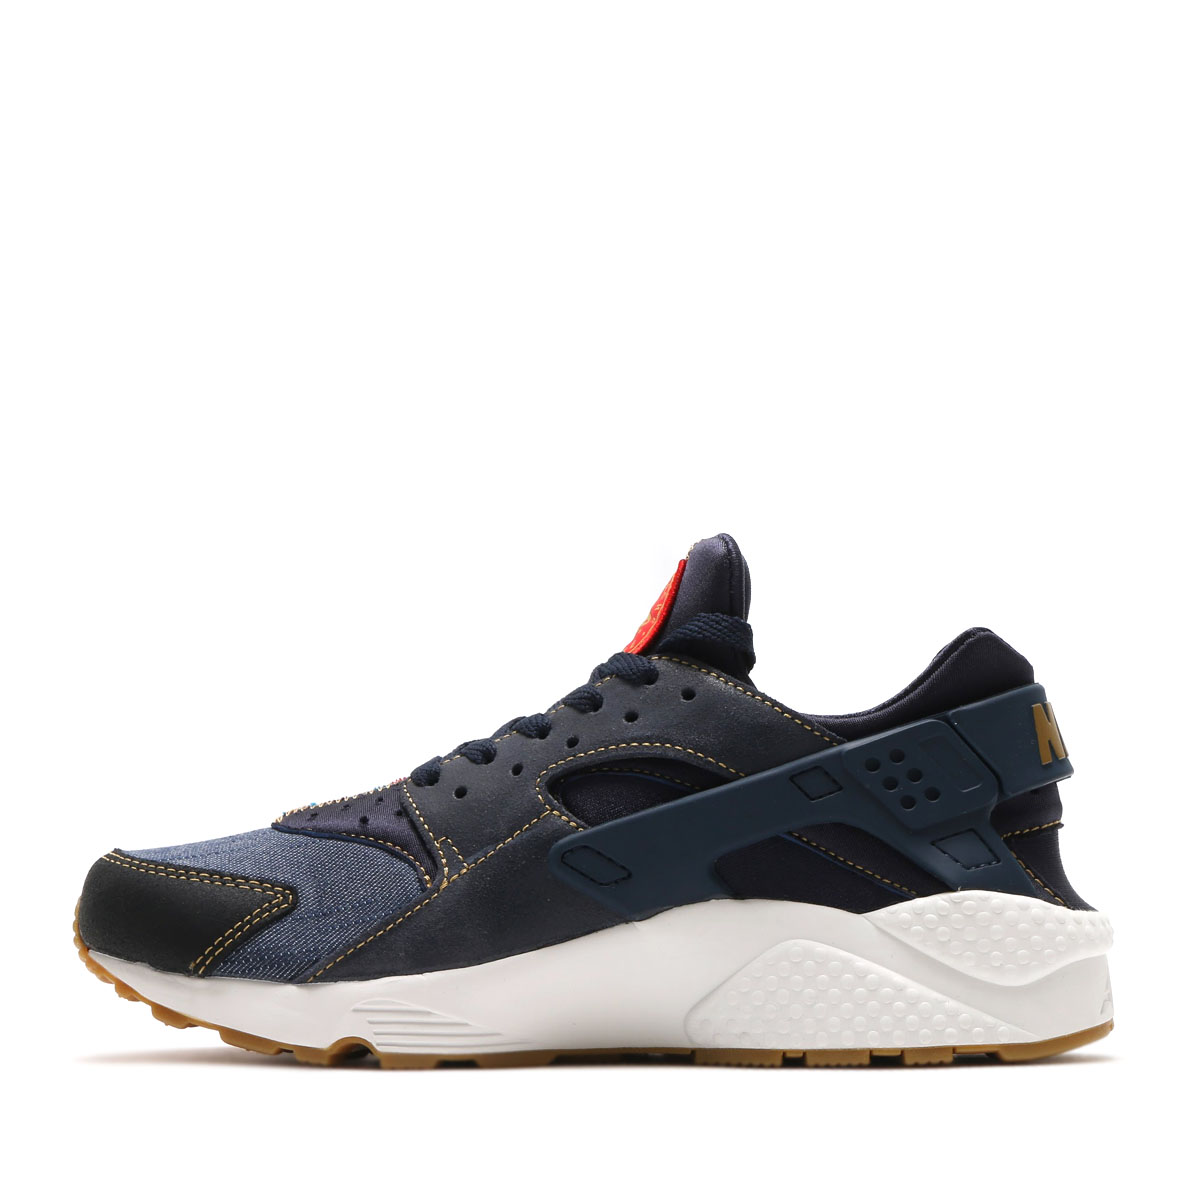 NIKE AIR HUARACHE RUN SE (ナイキエアハラチラン SE) (DARK OBSIDIAN/DARK OBSIDIAN-SUMMIT WHITE) 17SU-S